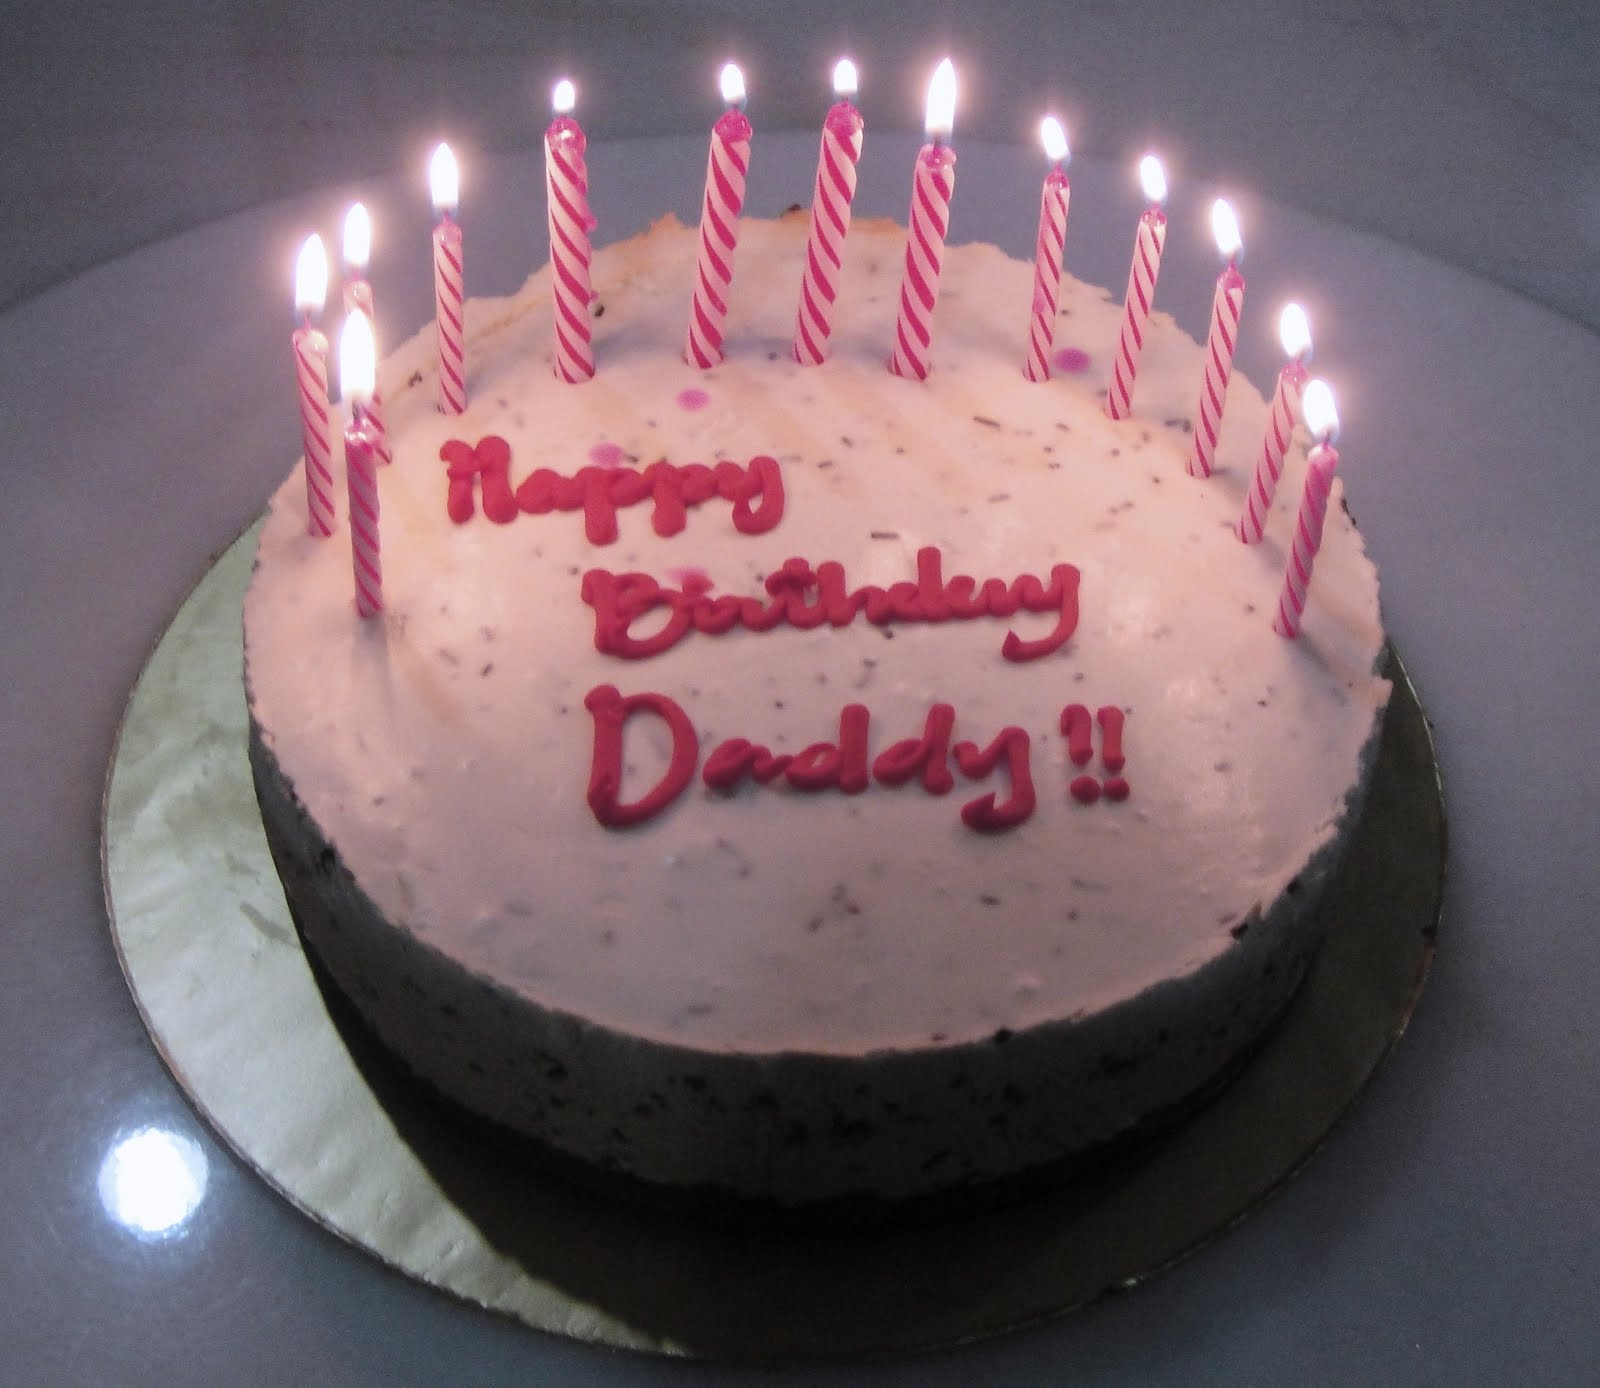 Birthday Cake For Daddy With Name